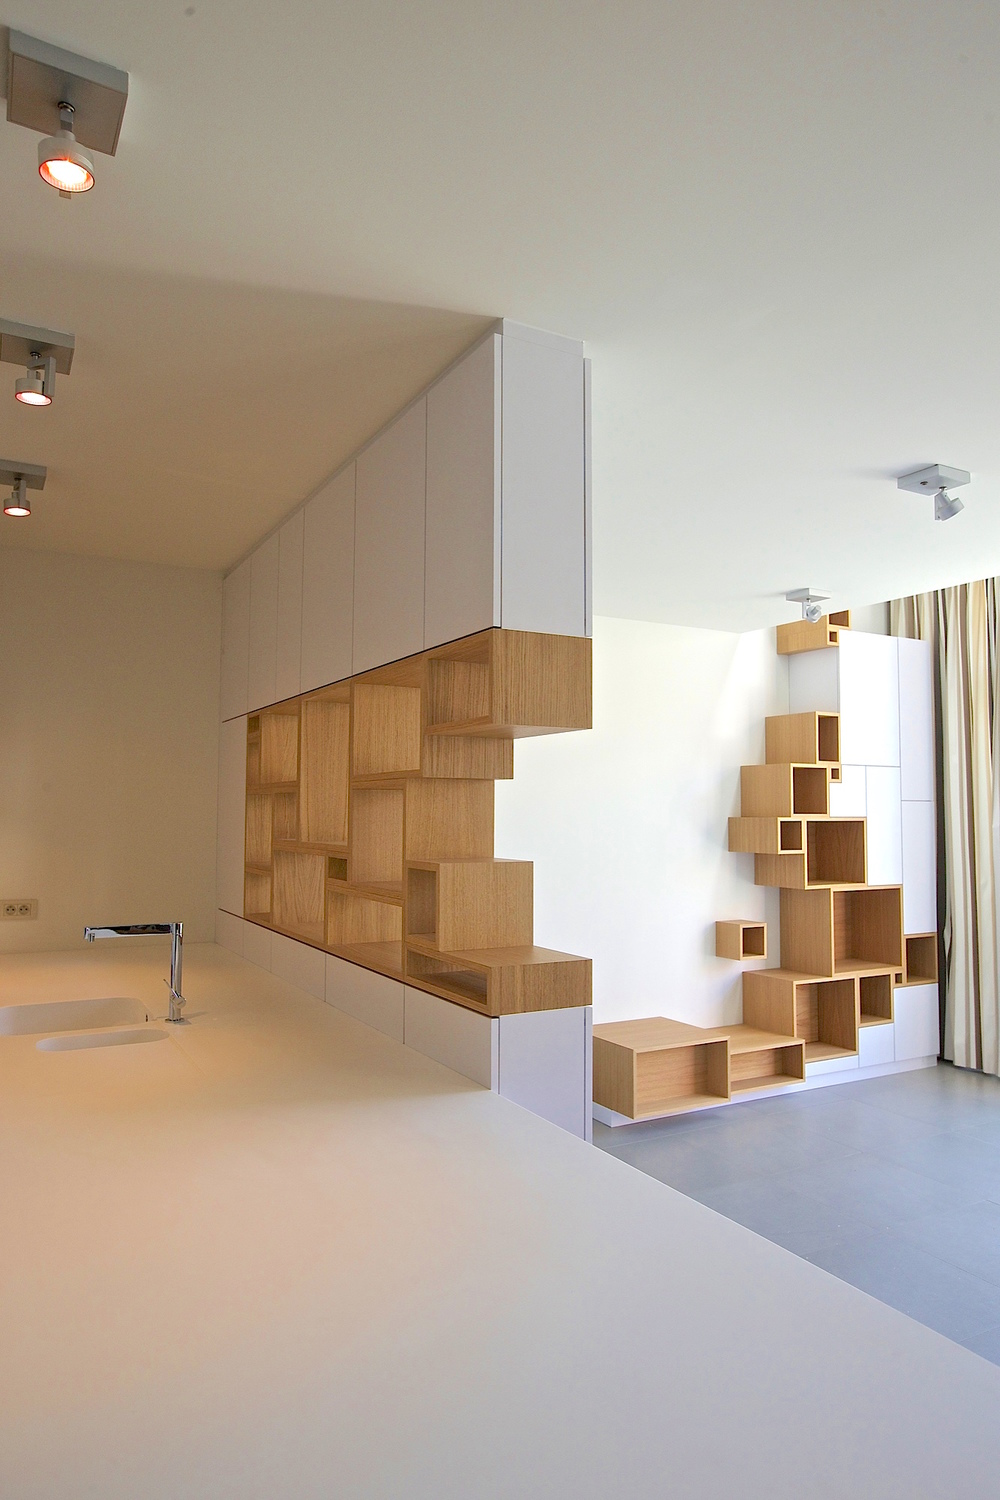 Filip janssens for Meuble bibliotheque design